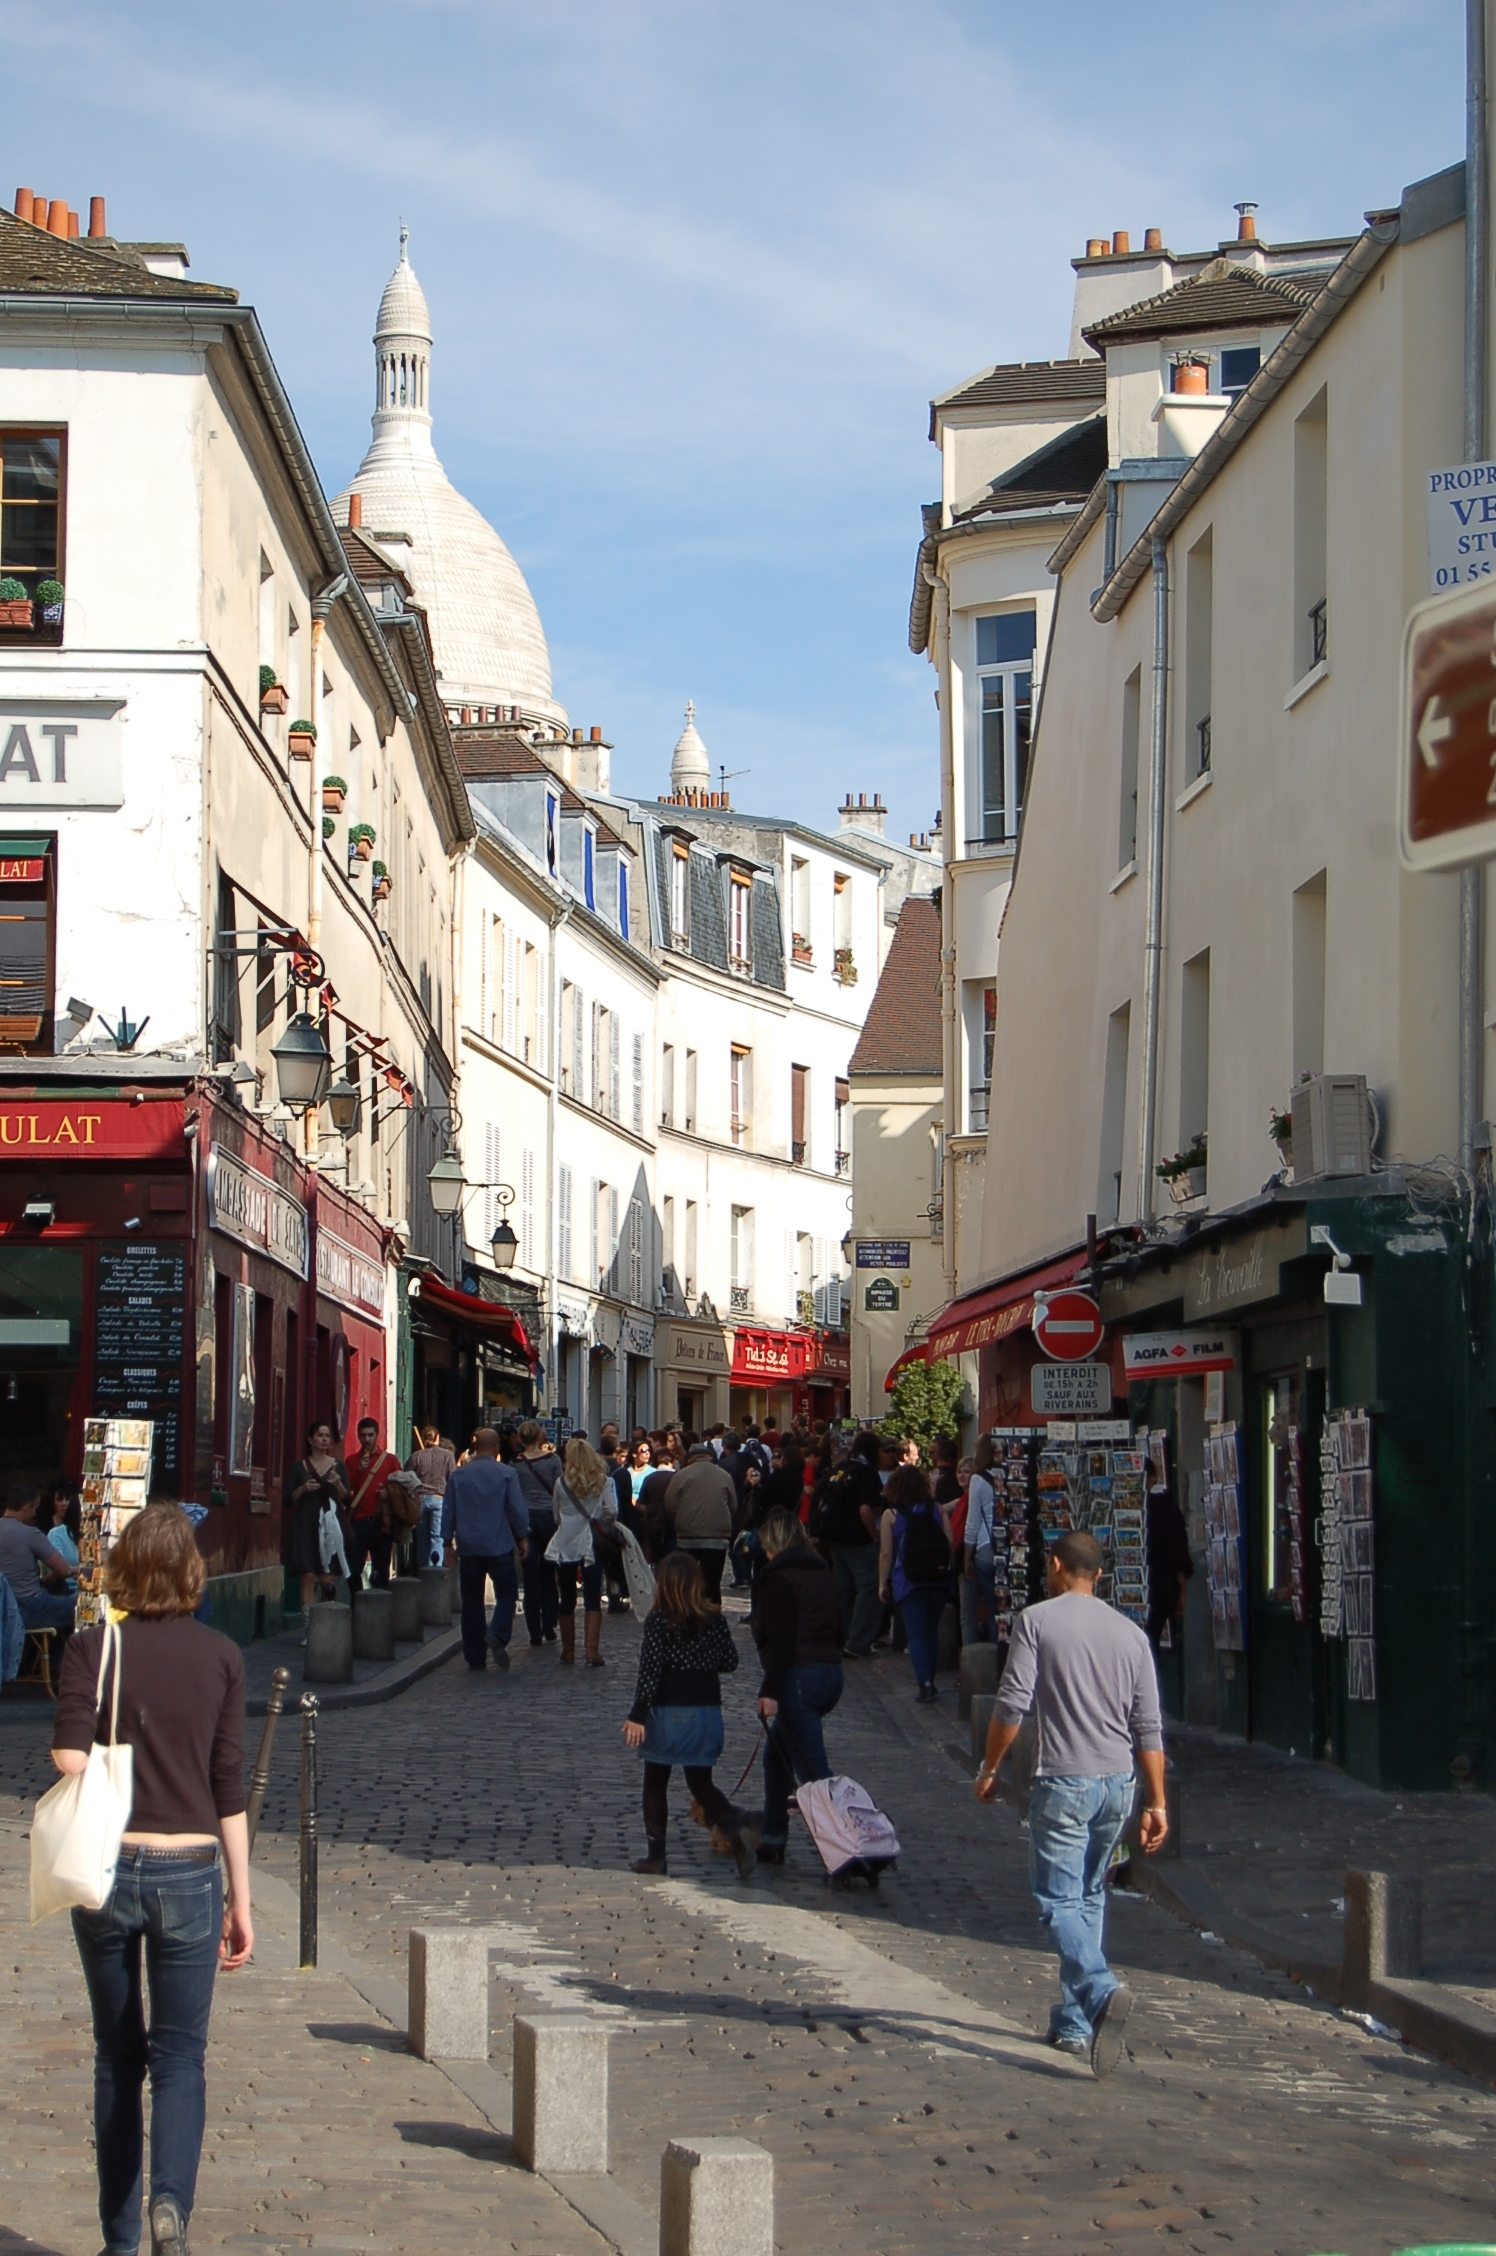 http://upload.wikimedia.org/wikipedia/commons/1/19/Rue_Norvins_Montmartre_Paris.jpg